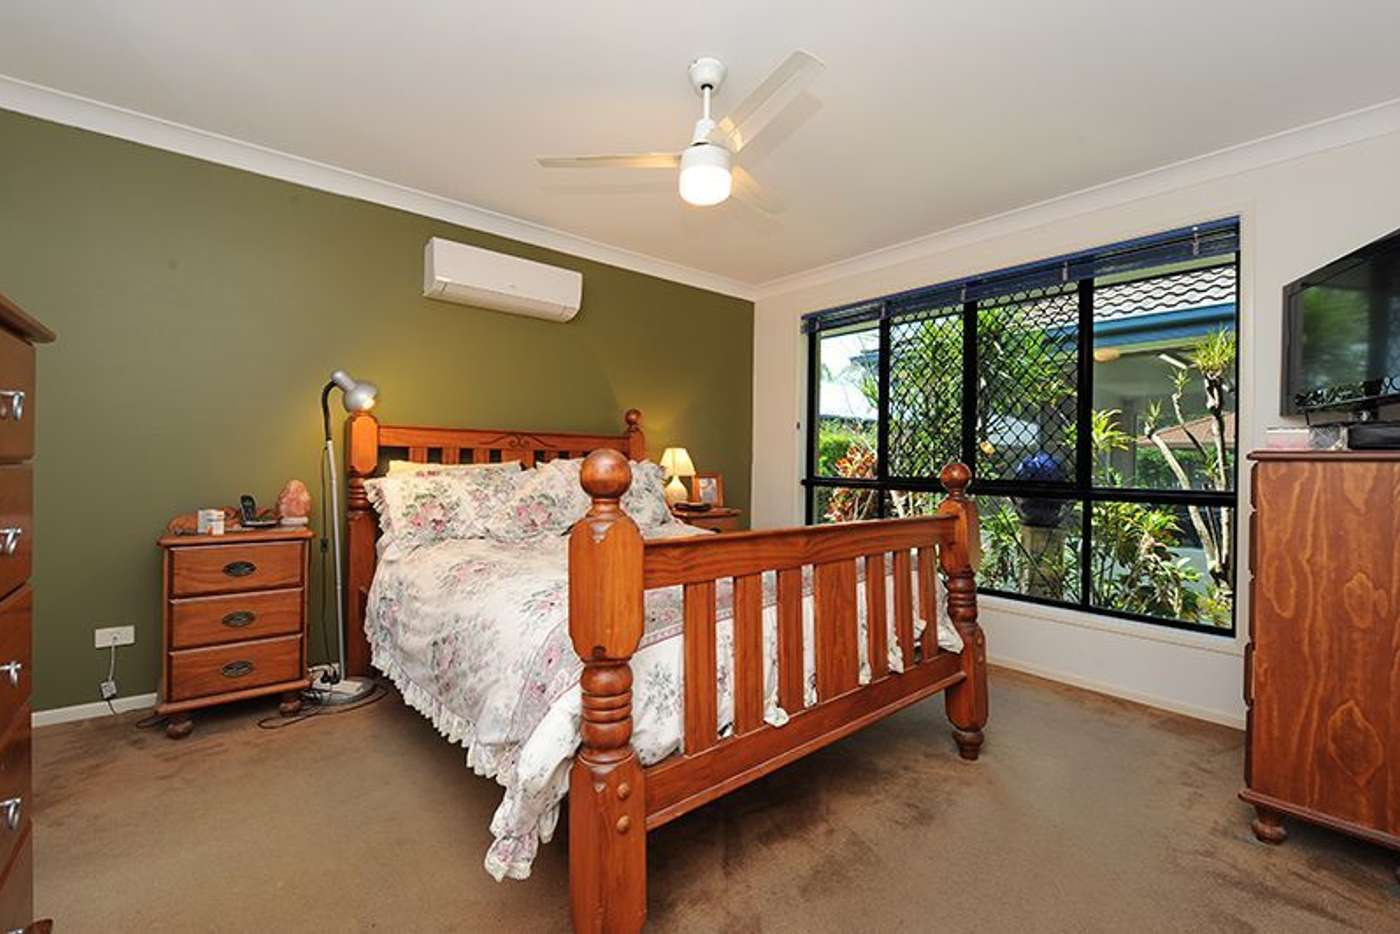 Sixth view of Homely house listing, 8 Lilac Cresent, Currimundi QLD 4551